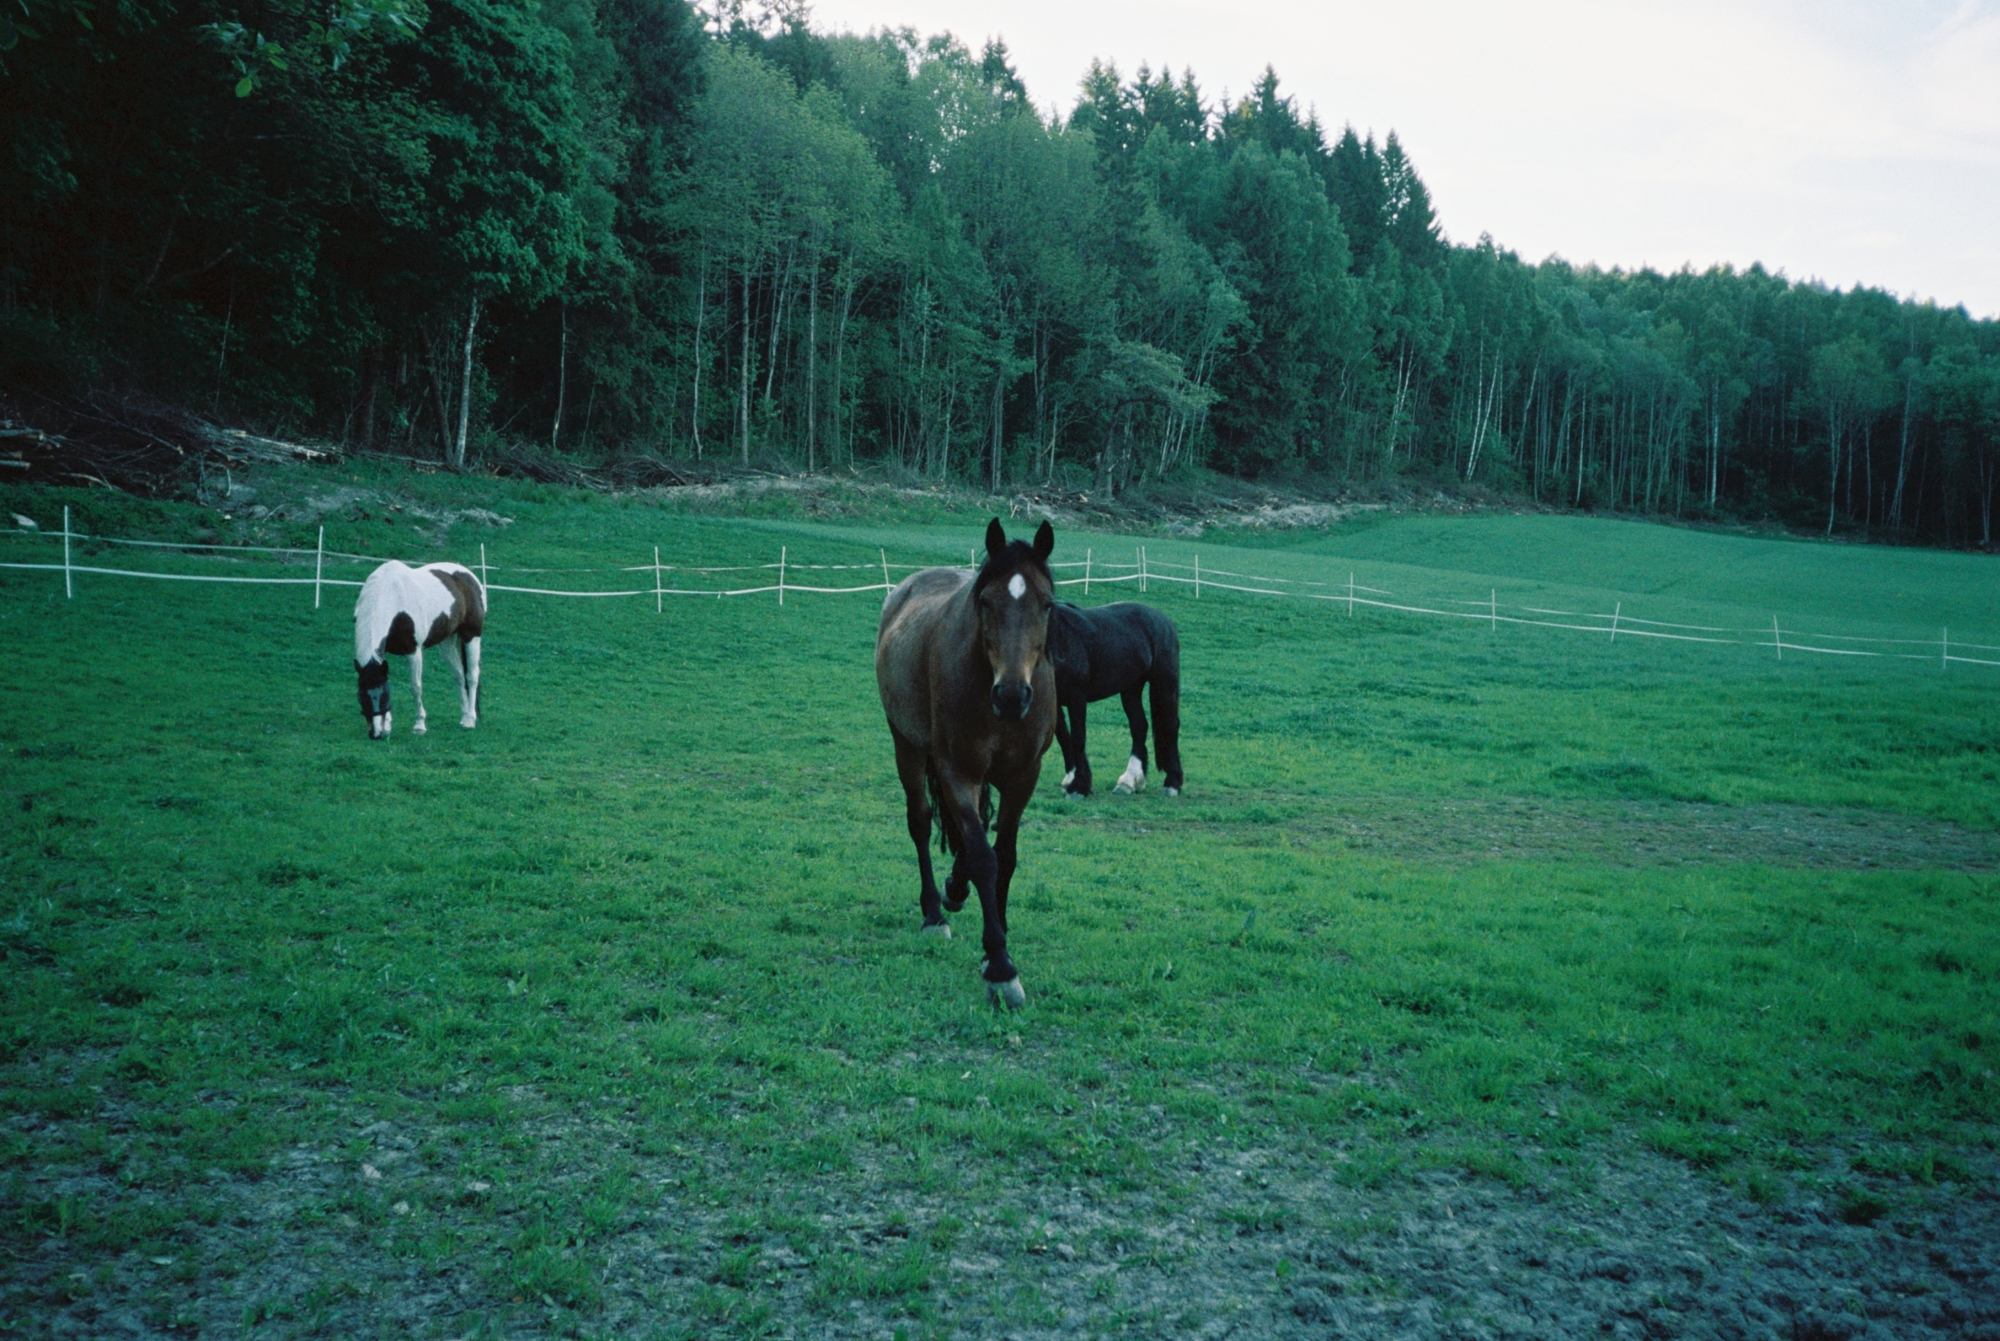 Three horses stand in a field. The one nearest to the camera looks to be trotting toward the photographer.